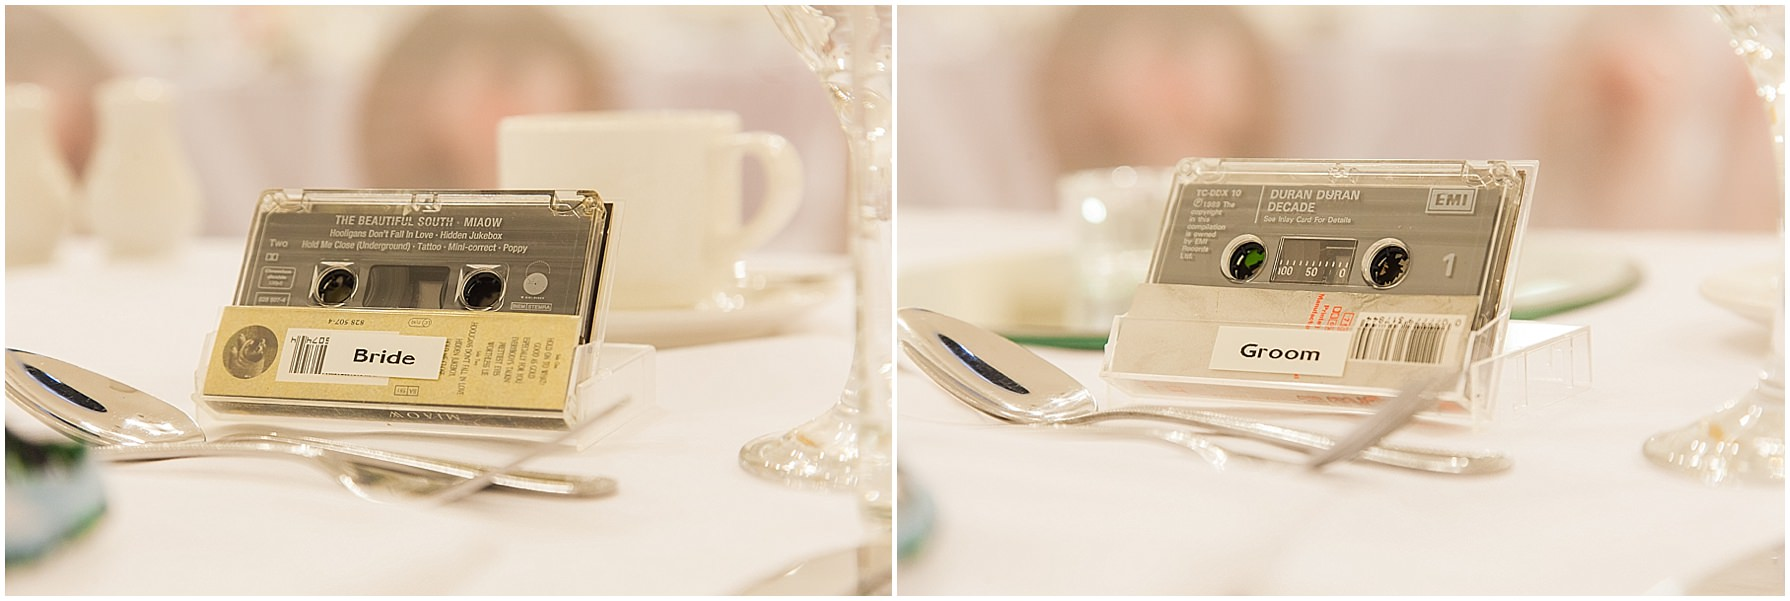 Manchester music themed wedding at Chancellors hotel